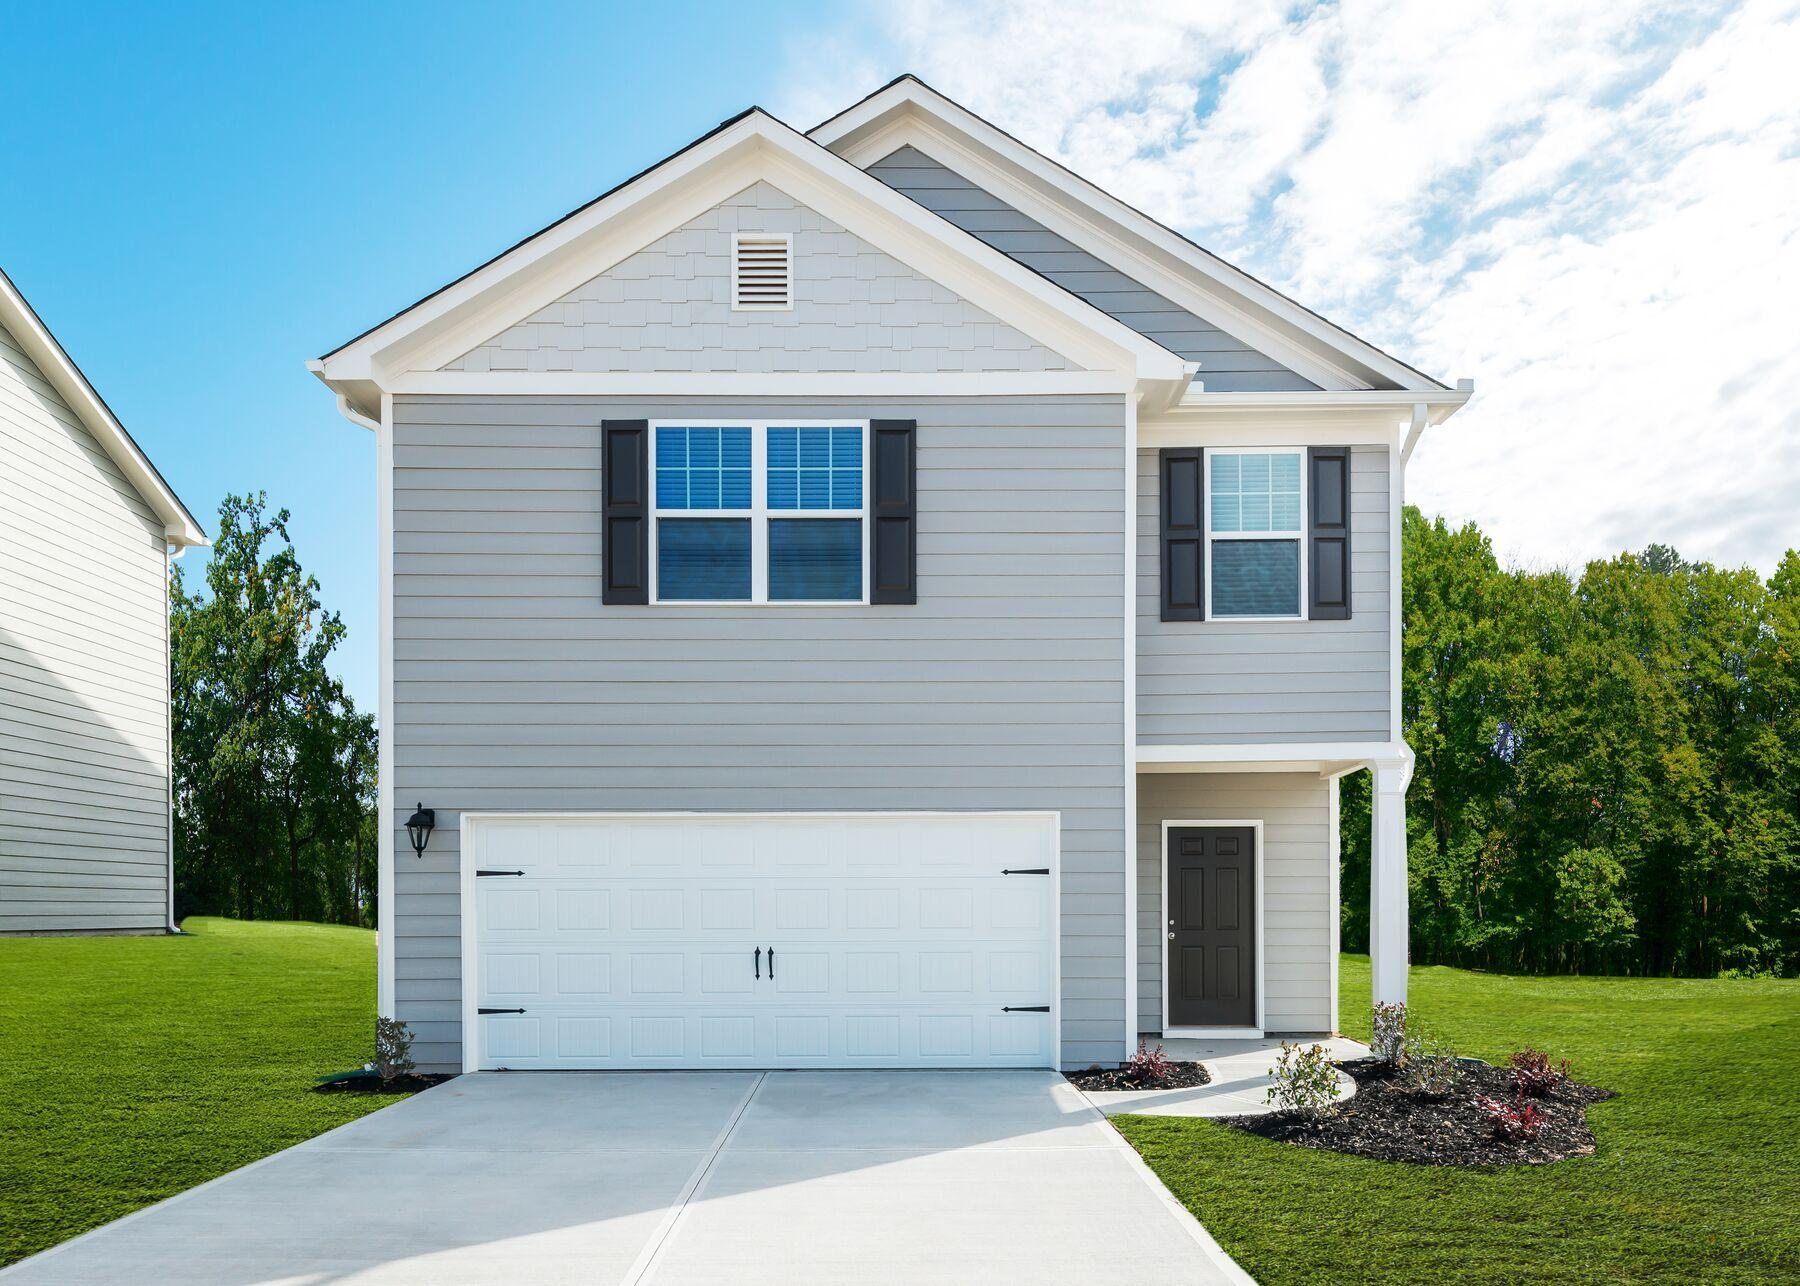 The Lincoln at Anneewakee Trails:Spacious home with great curb appeal